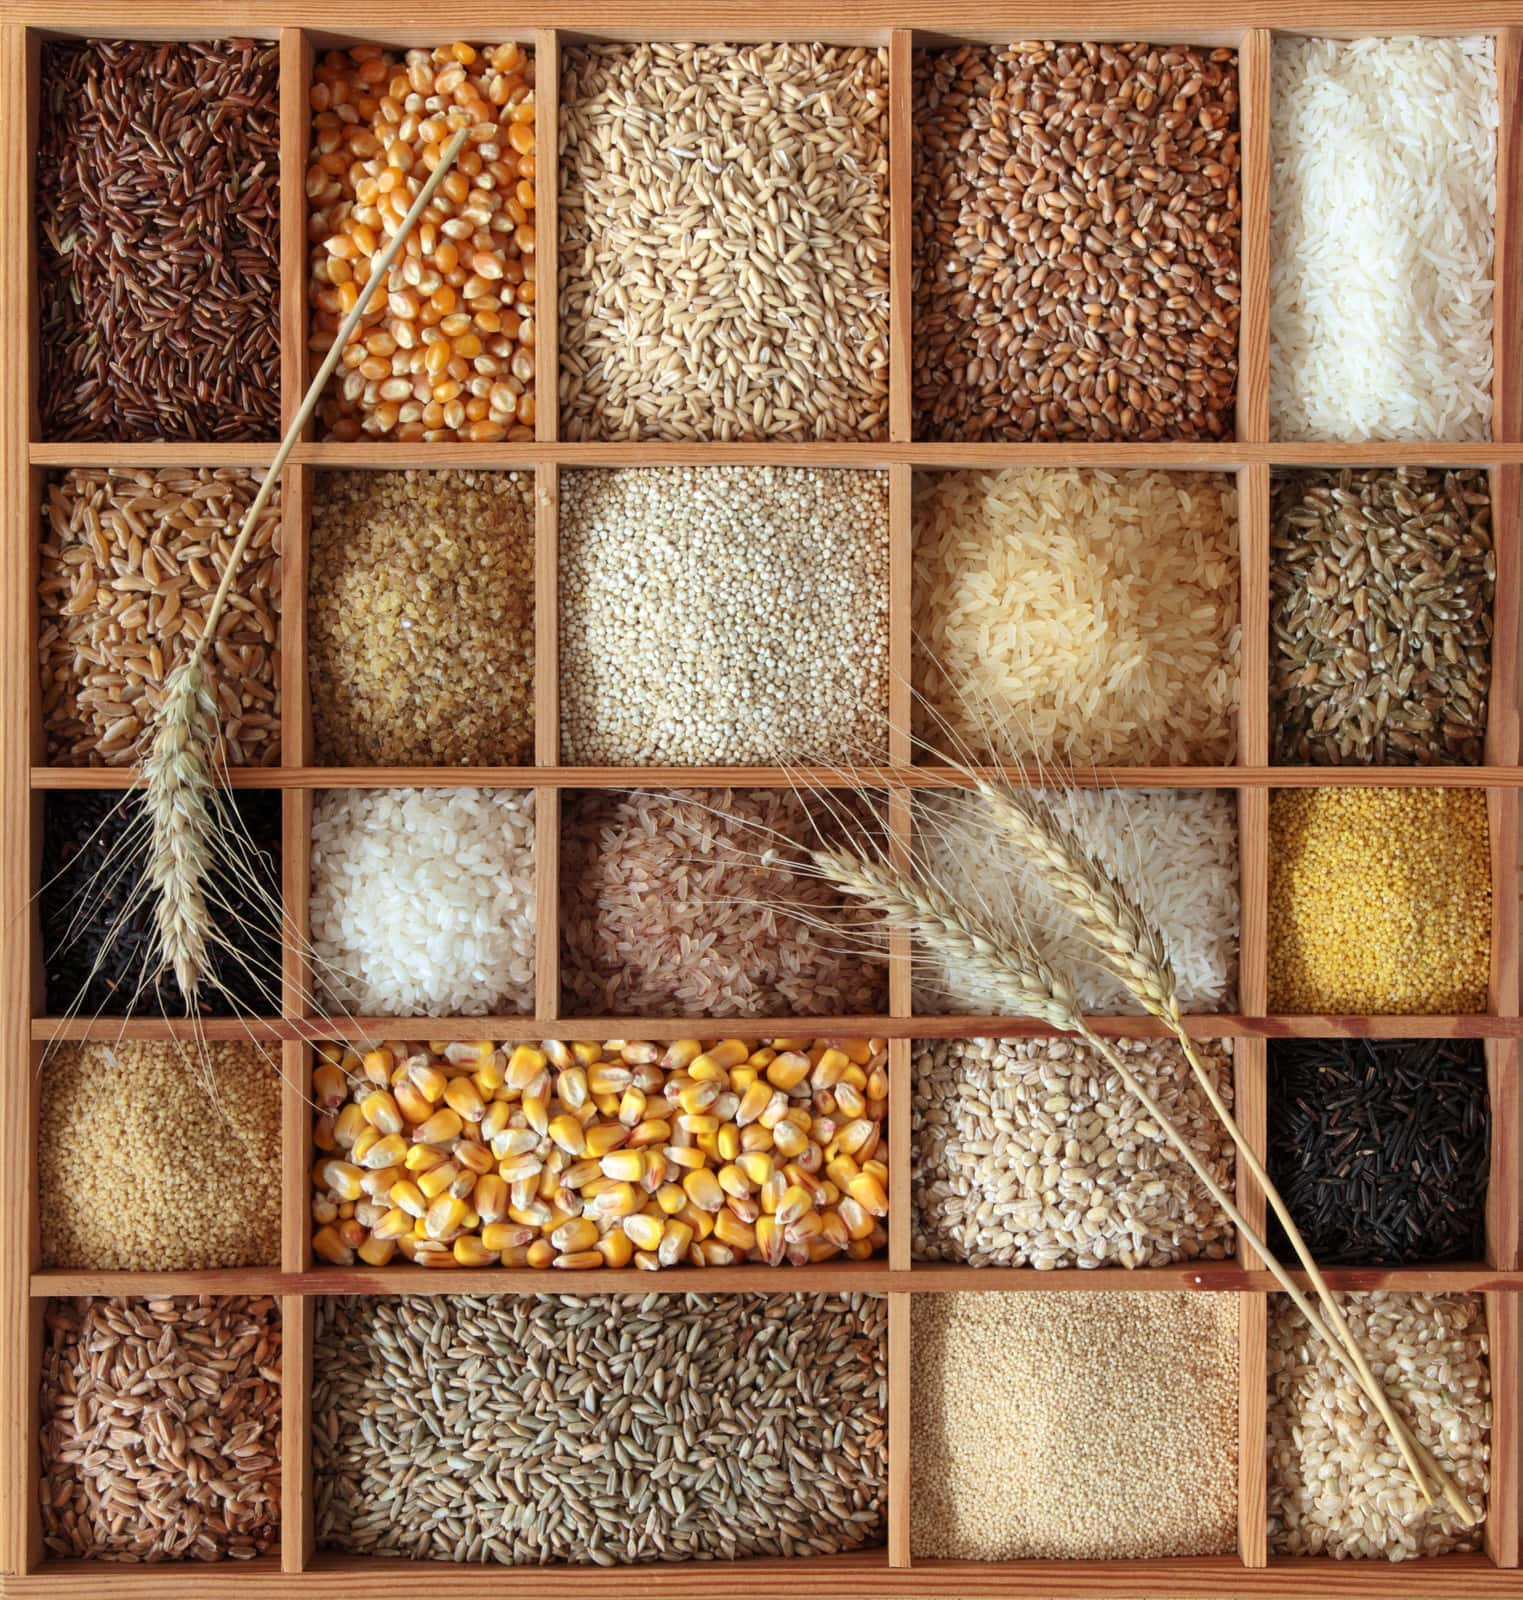 grains and seeds in a wooden compartmented box